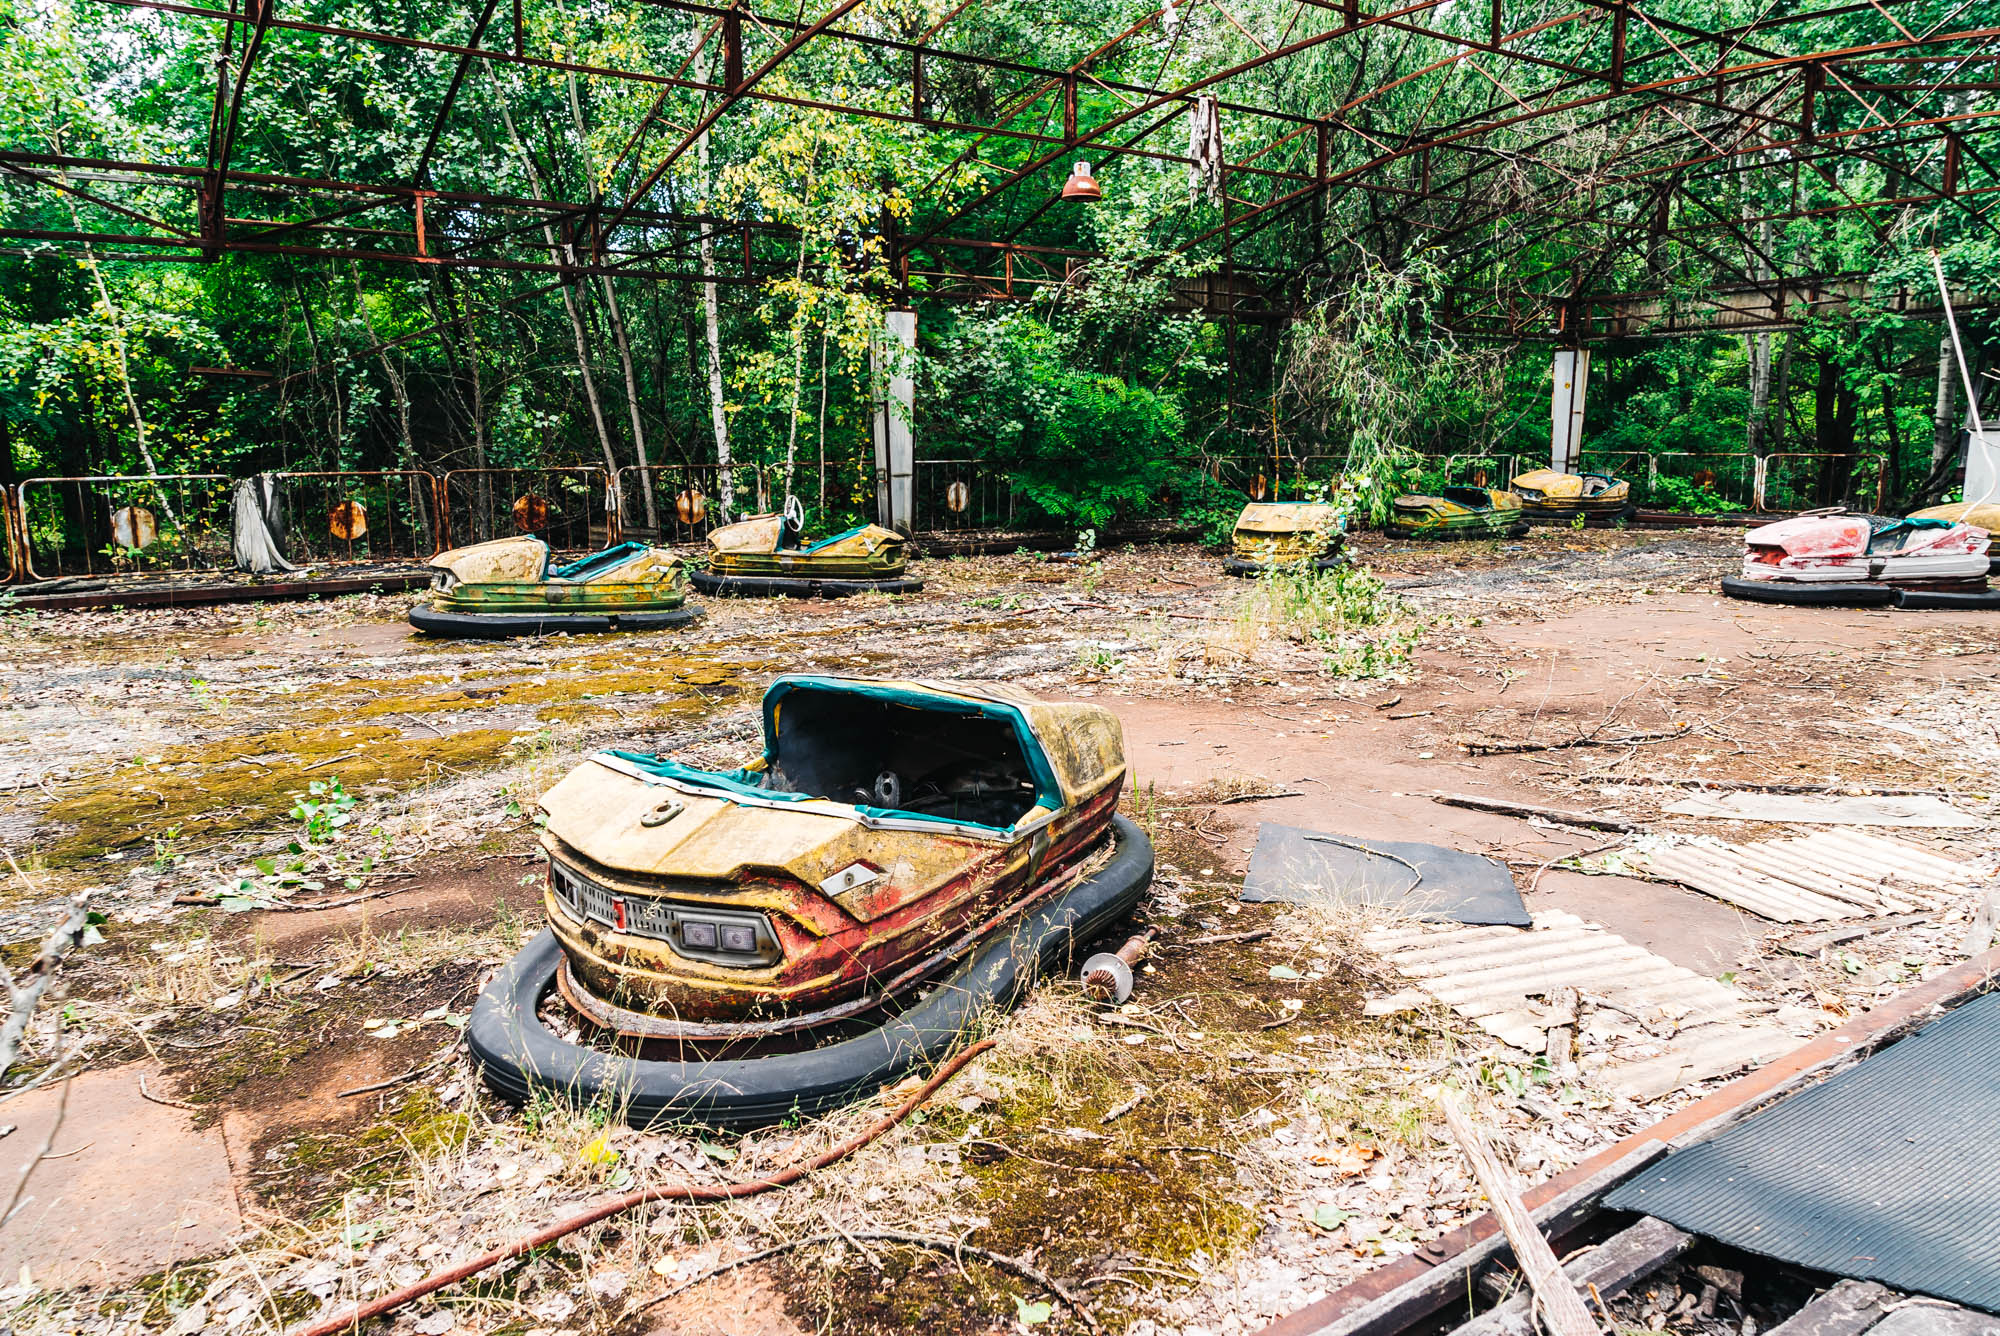 The Go Karts of Pripyat that were never used